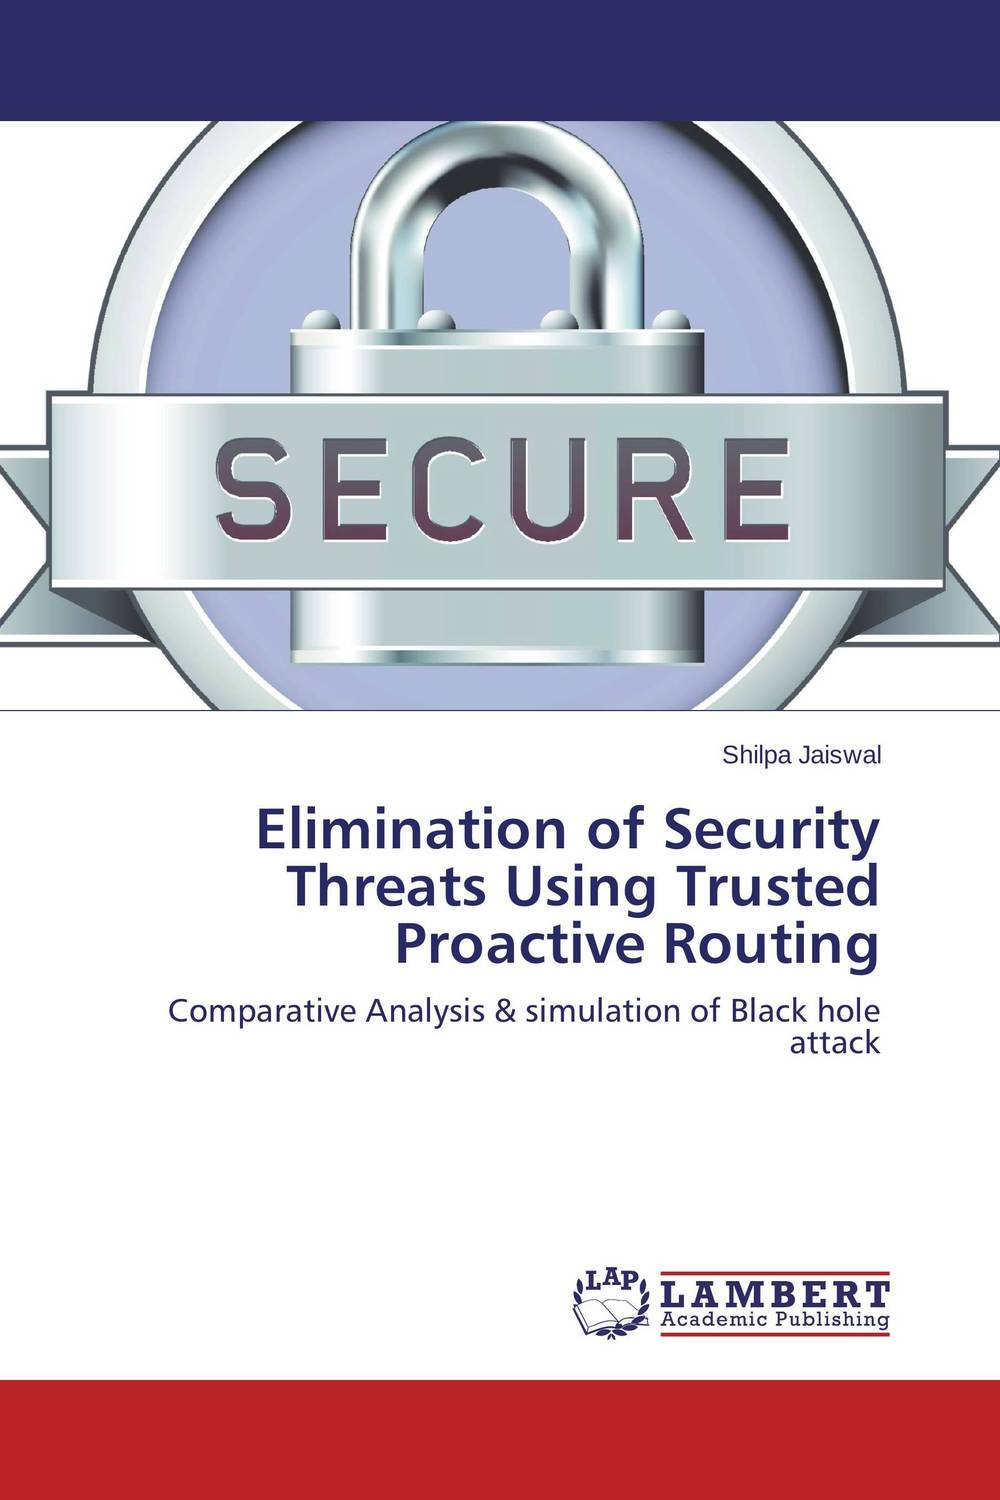 Elimination of Security Threats Using Trusted     Proactive Routing belousov a security features of banknotes and other documents methods of authentication manual денежные билеты бланки ценных бумаг и документов